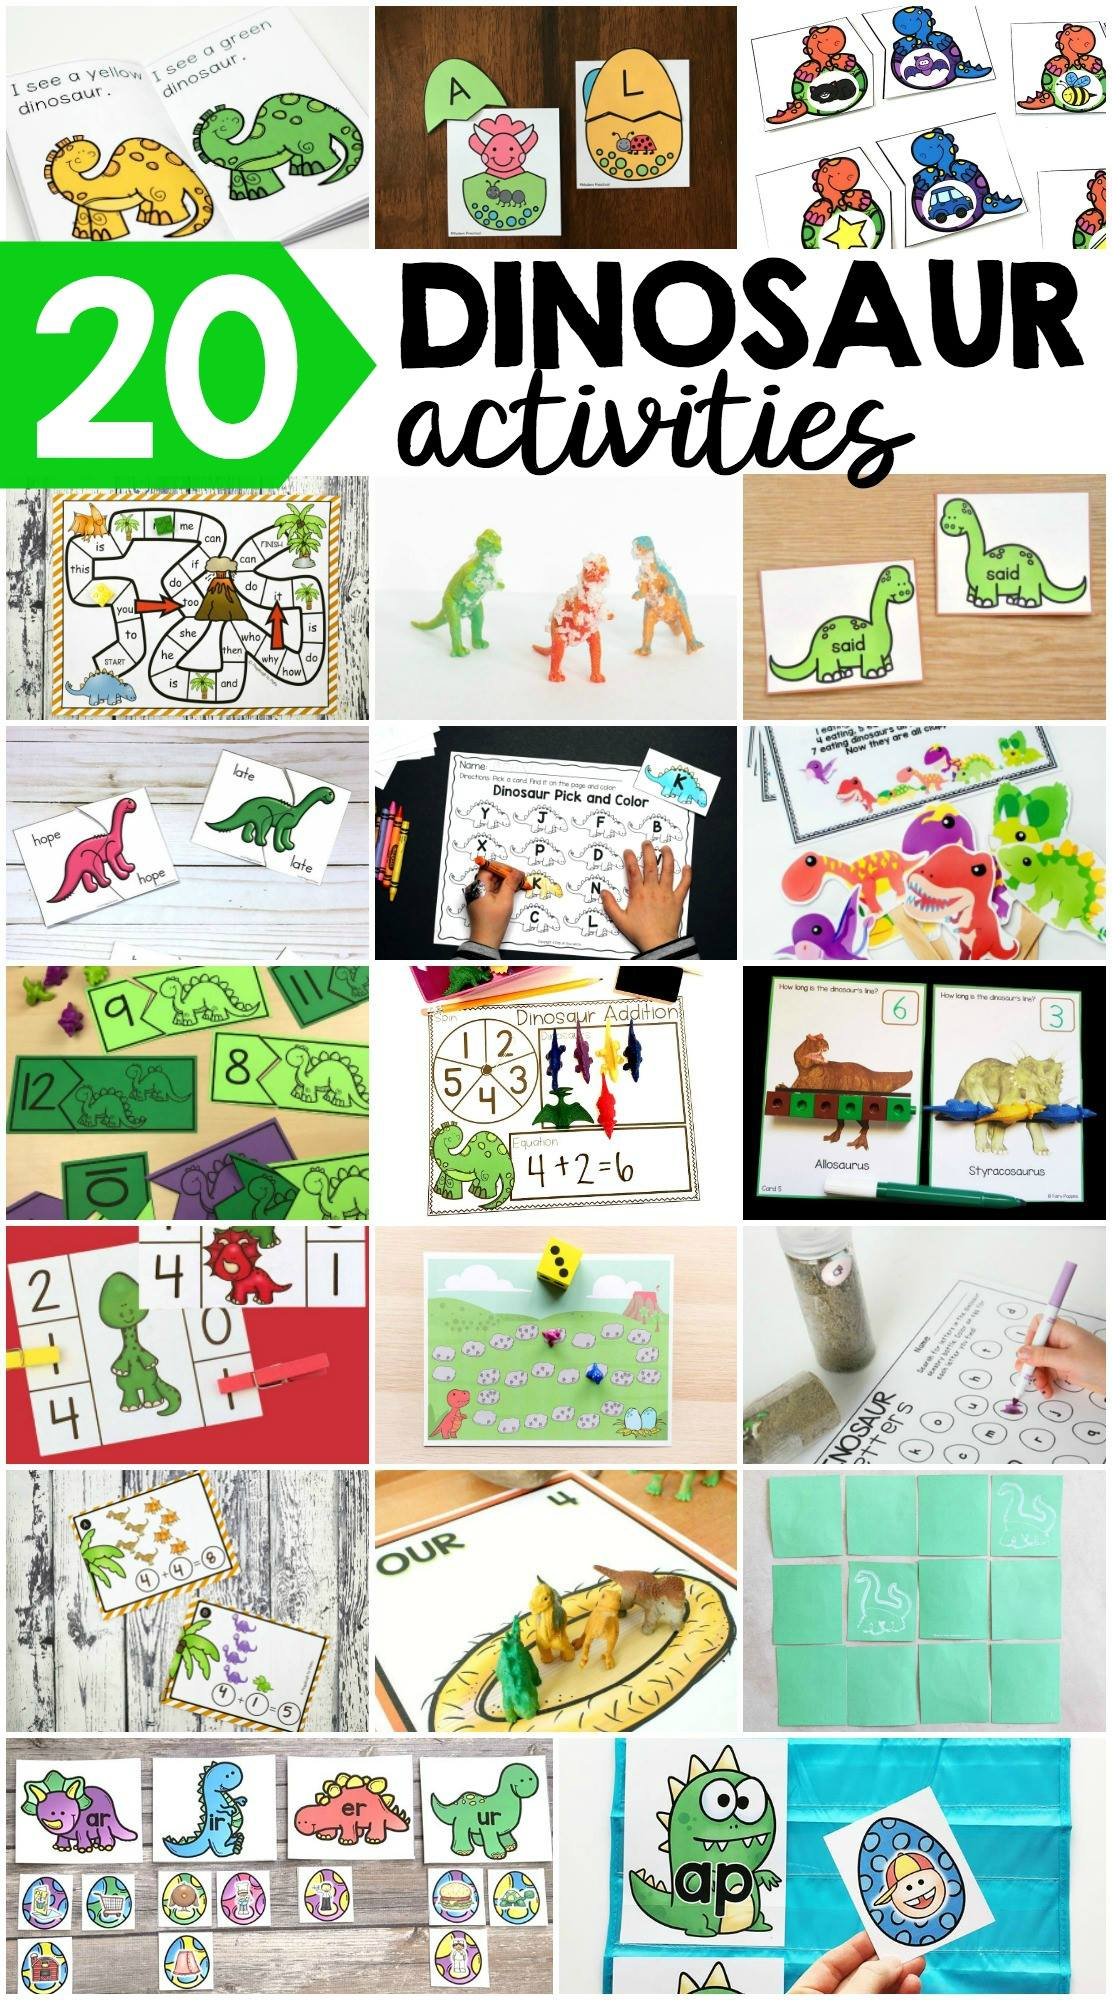 Awesome dinosaur activities for kids!